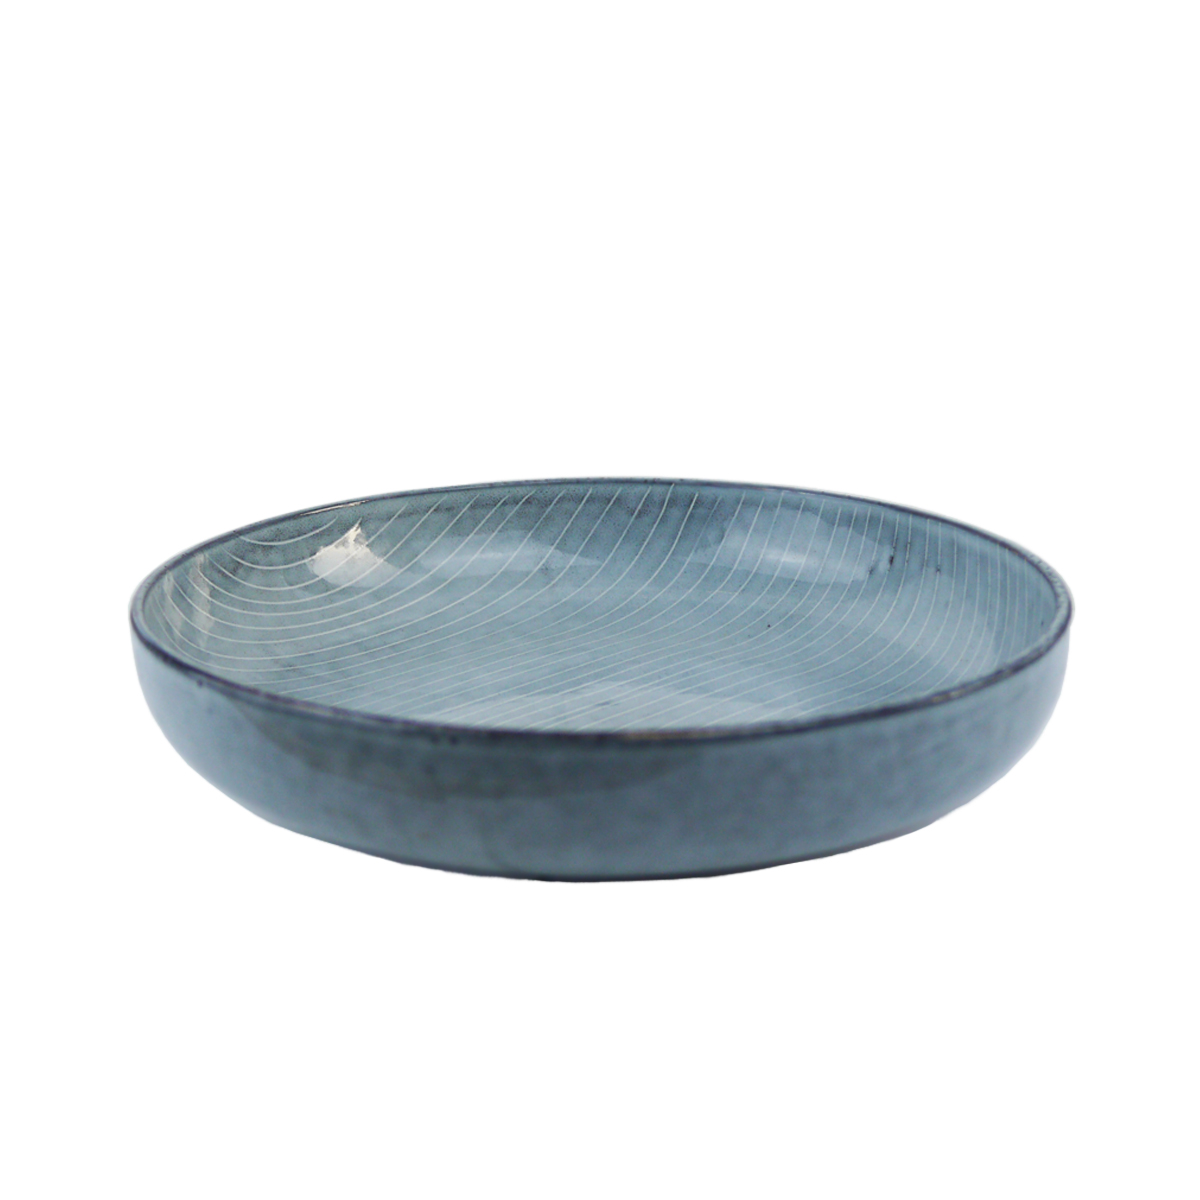 14533033 bowl nordic sea Broste